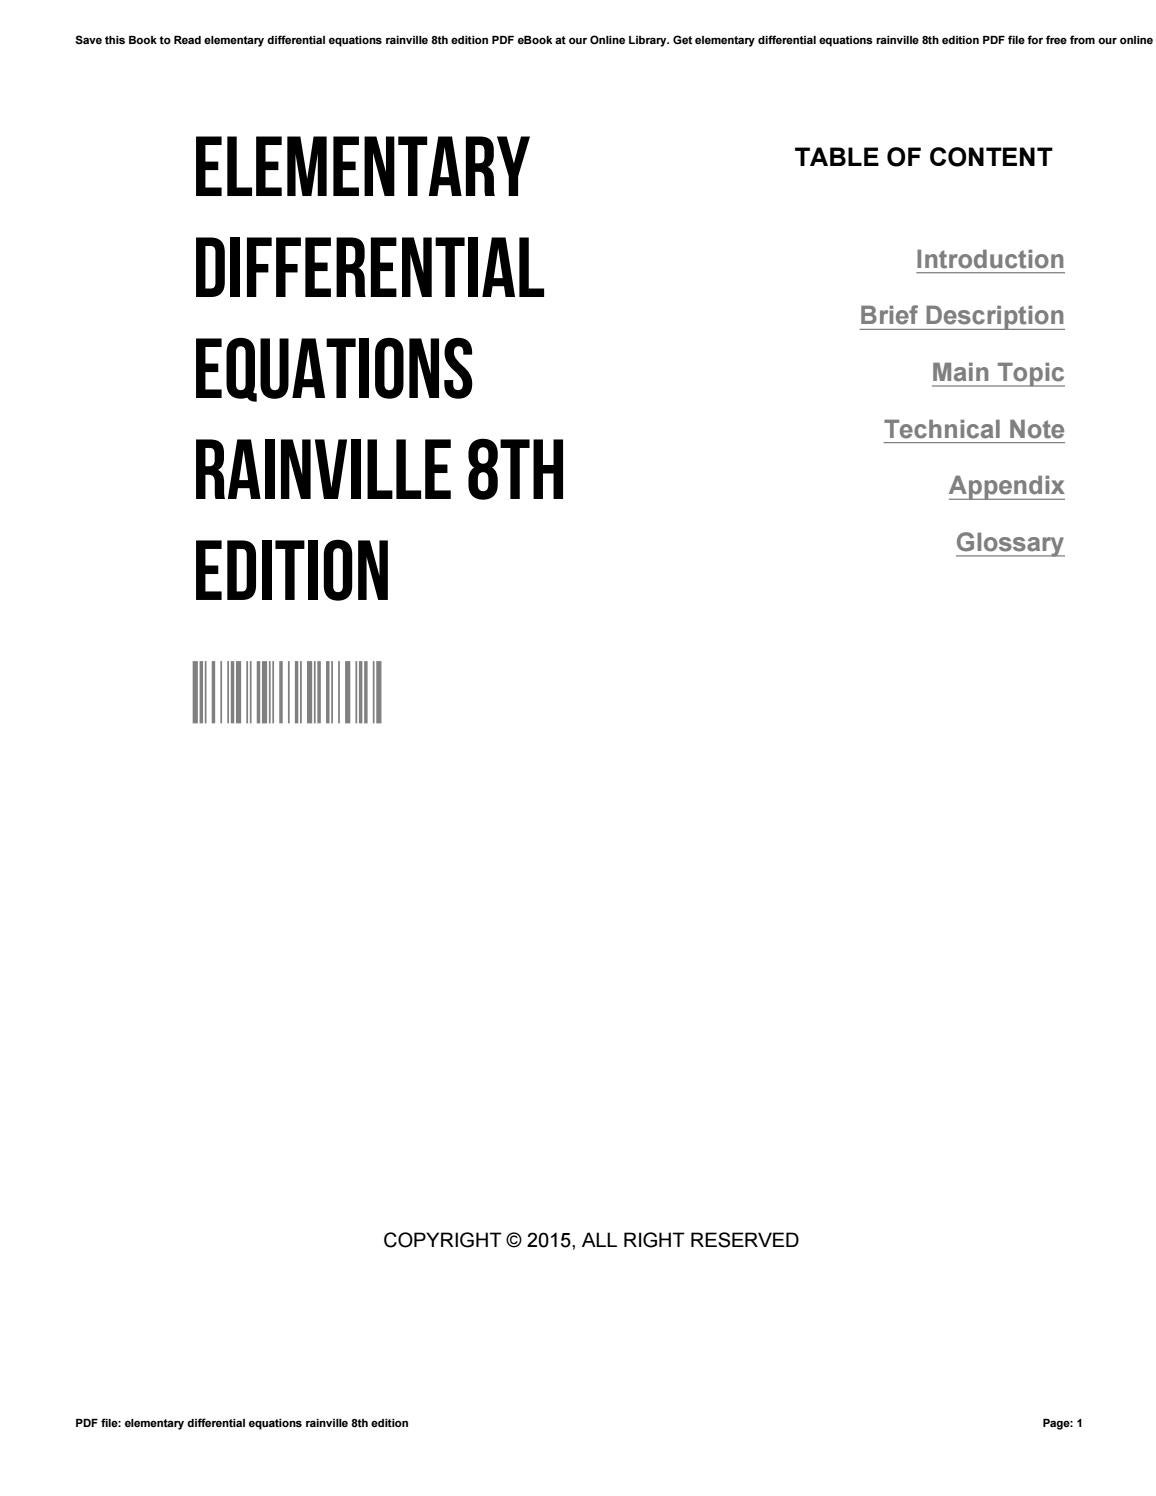 Elementary differential equations rainville 8th edition by PokGeer1280 -  issuu